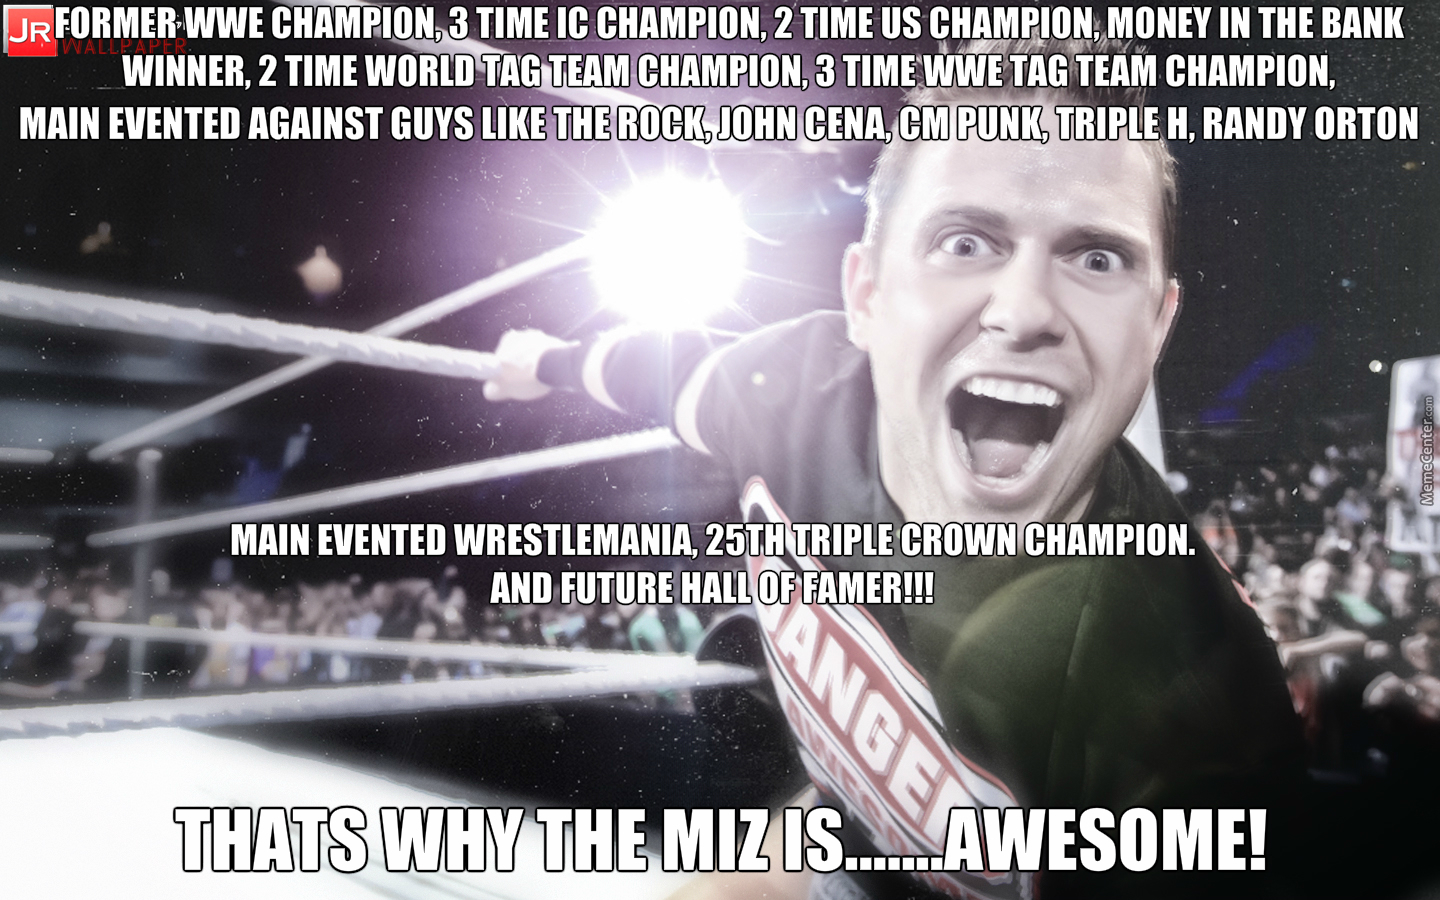 Former Wwe Champion 3 The Miz Meme